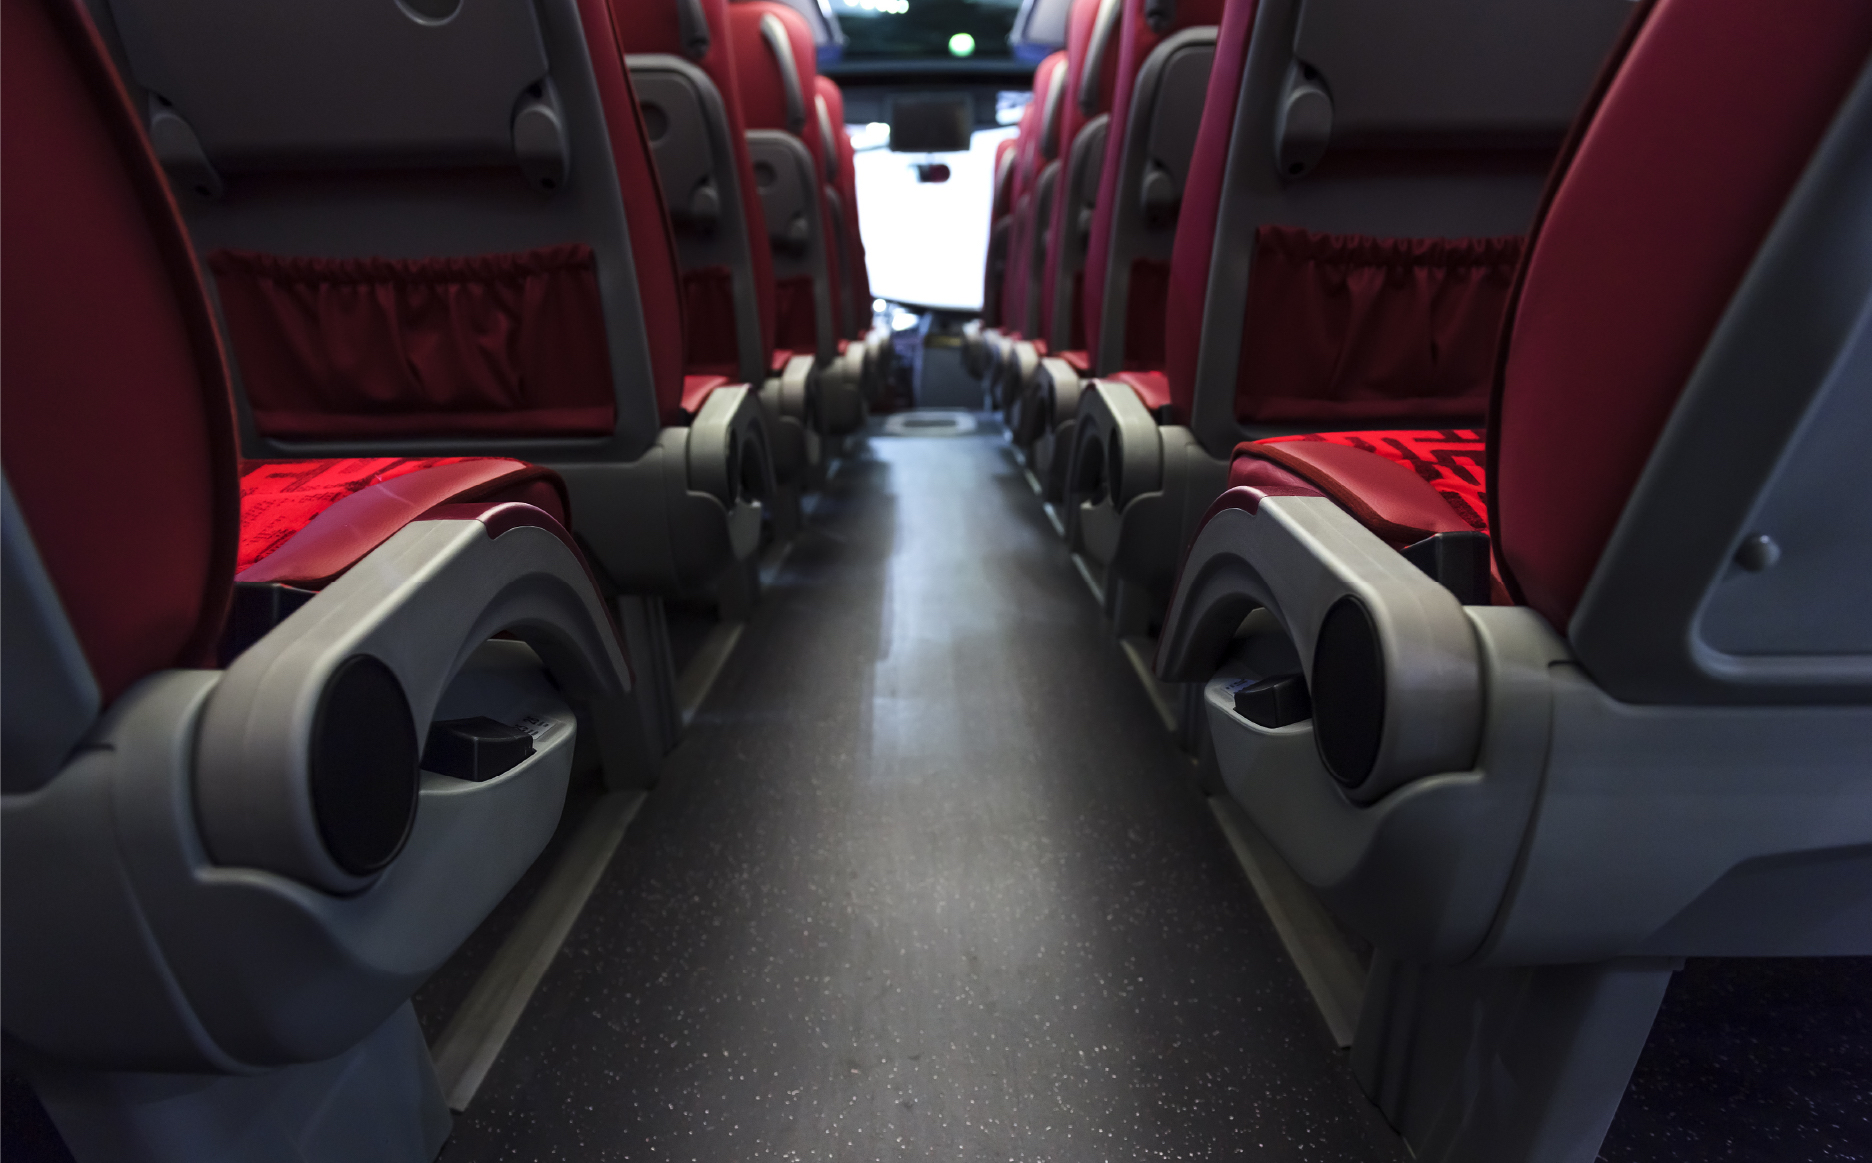 Material for bus